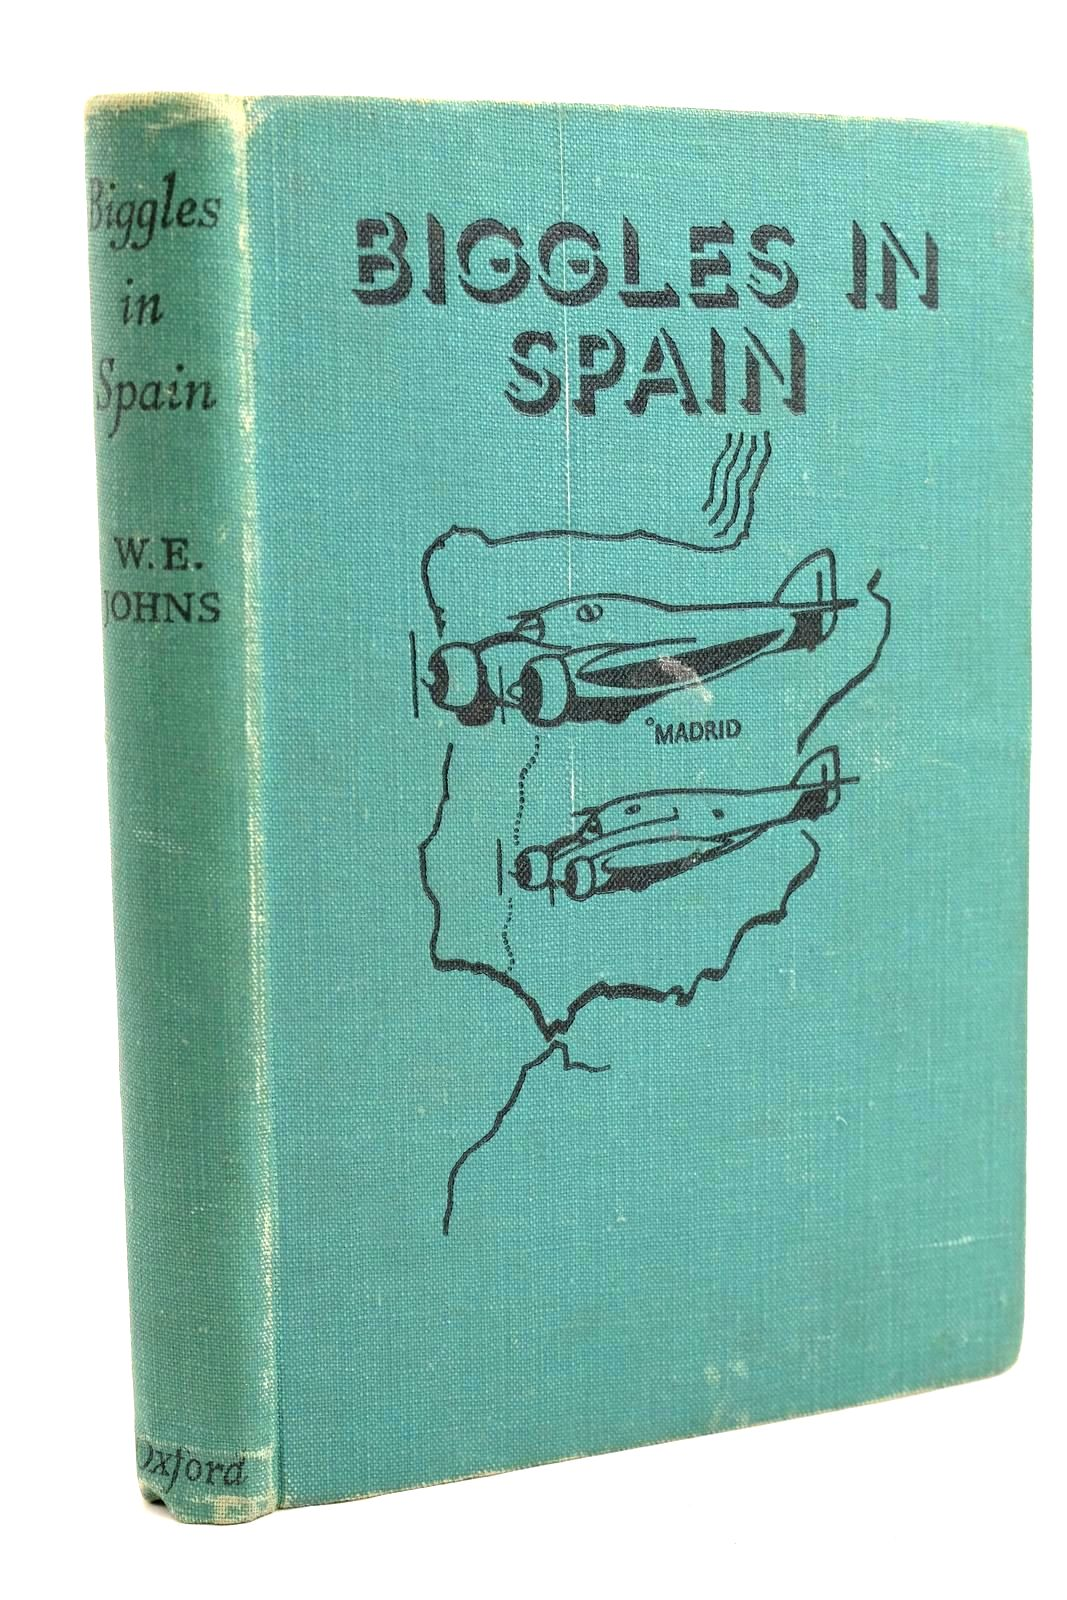 Photo of BIGGLES IN SPAIN written by Johns, W.E. illustrated by Leigh, Howard Abbey, J. published by Geoffrey Cumberlege, Oxford University Press (STOCK CODE: 1320692)  for sale by Stella & Rose's Books